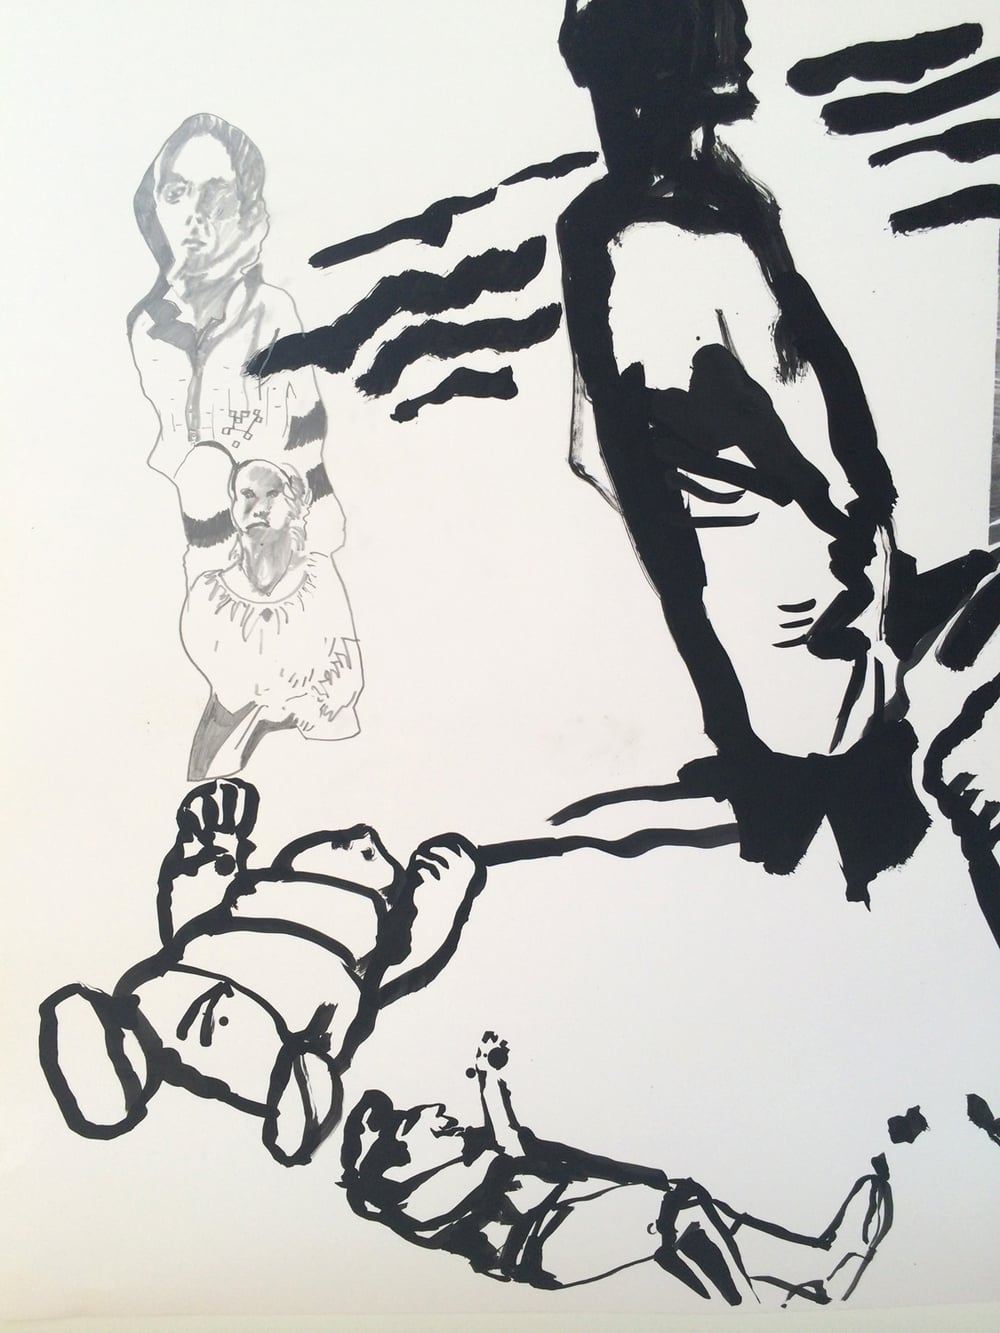 xxx new image worlds ss15 ink pencil.jpg